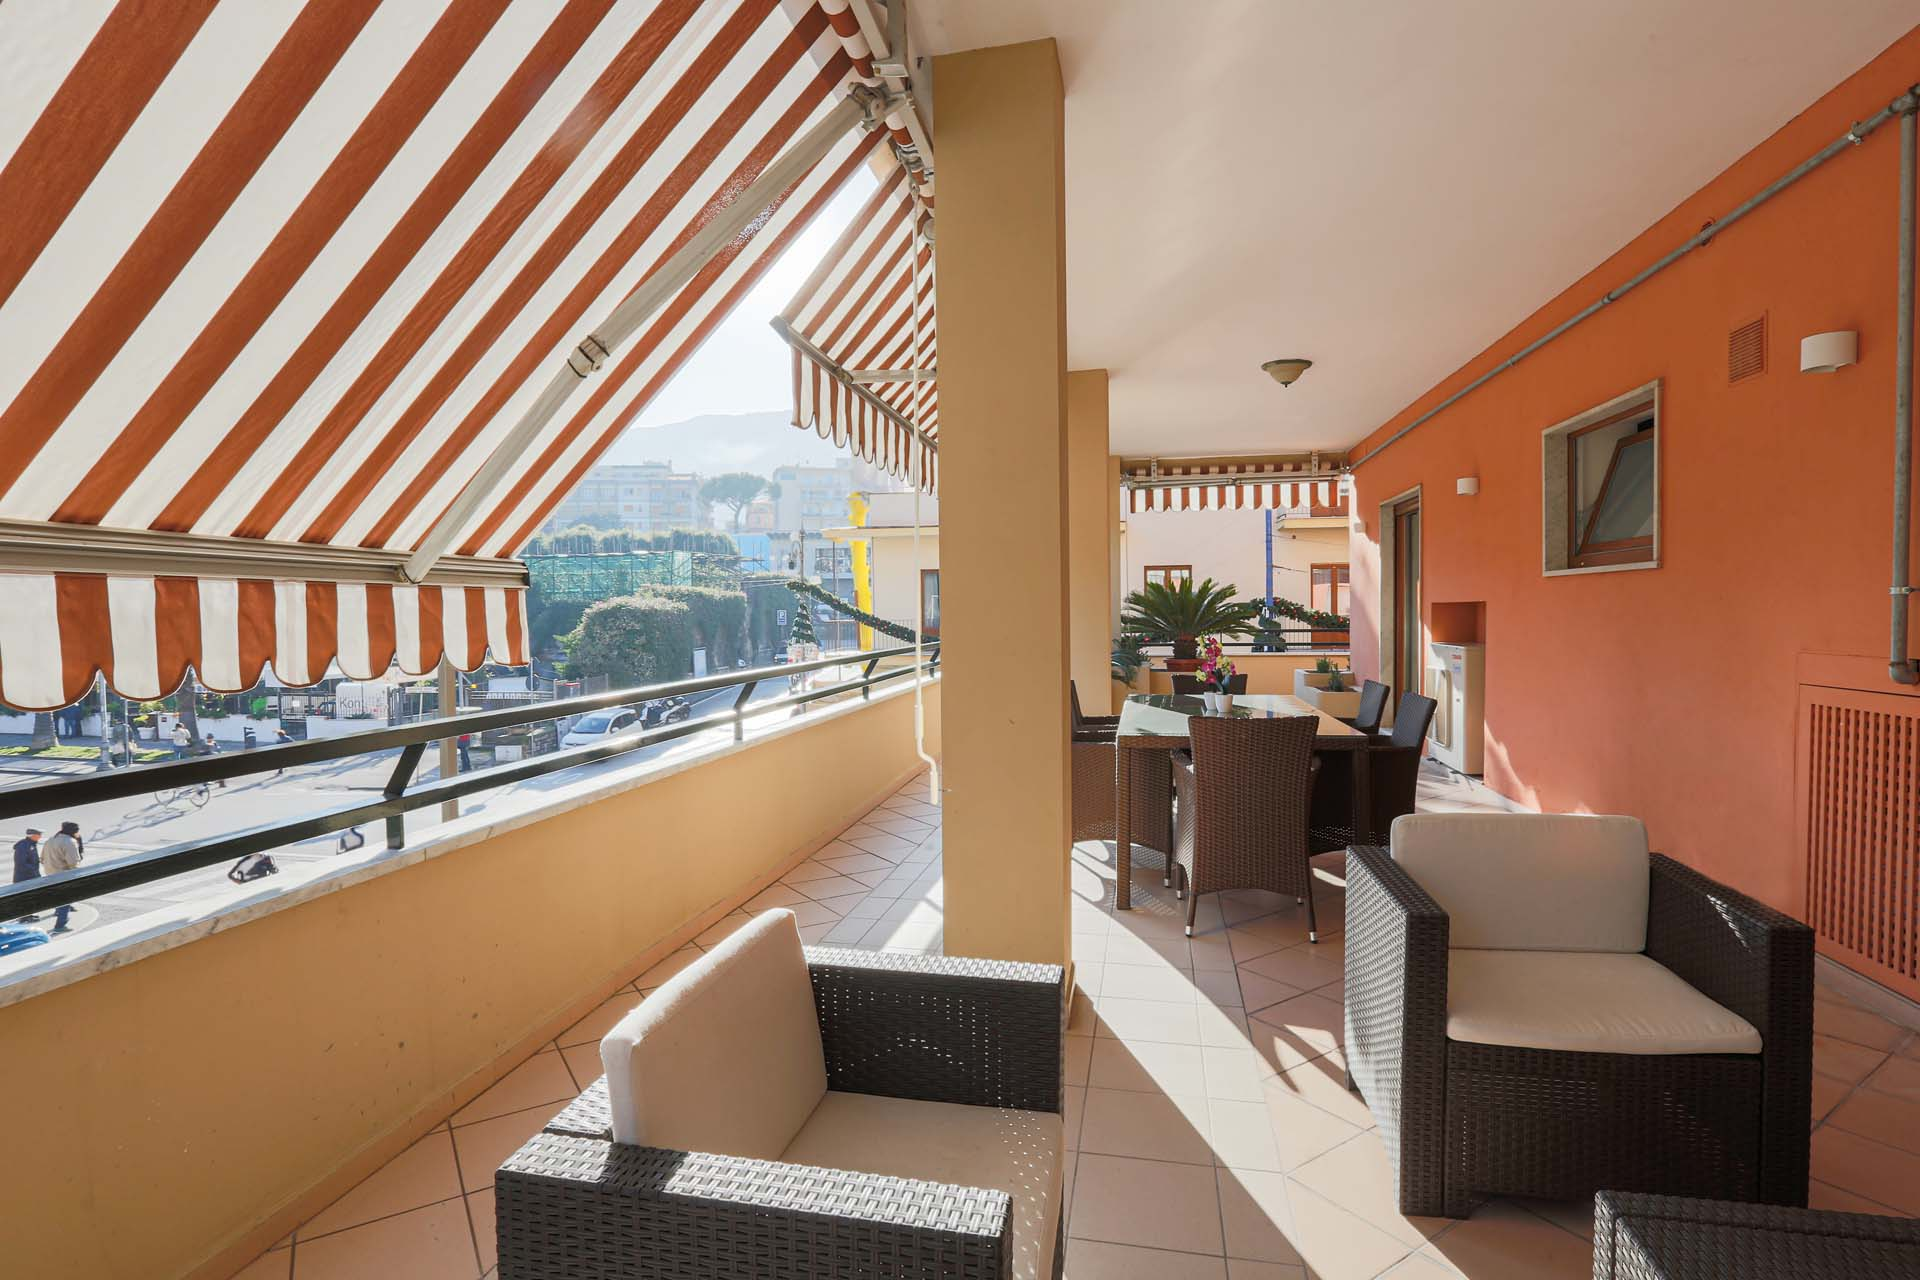 Conny's Luxury Maison Sorrento Apartment